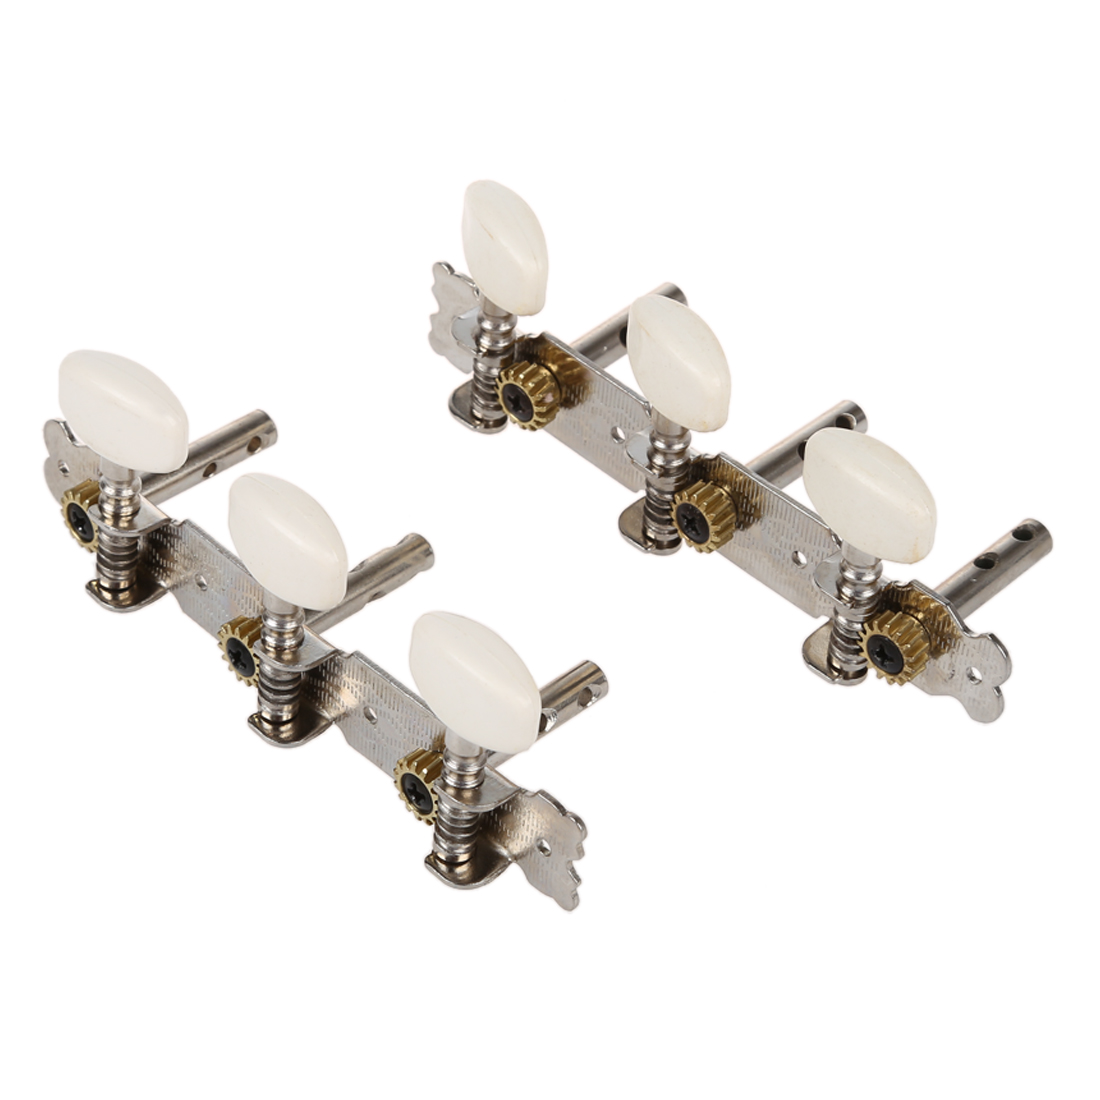 2 x 3 Replacement Tuner Guitar Machine Head Peg